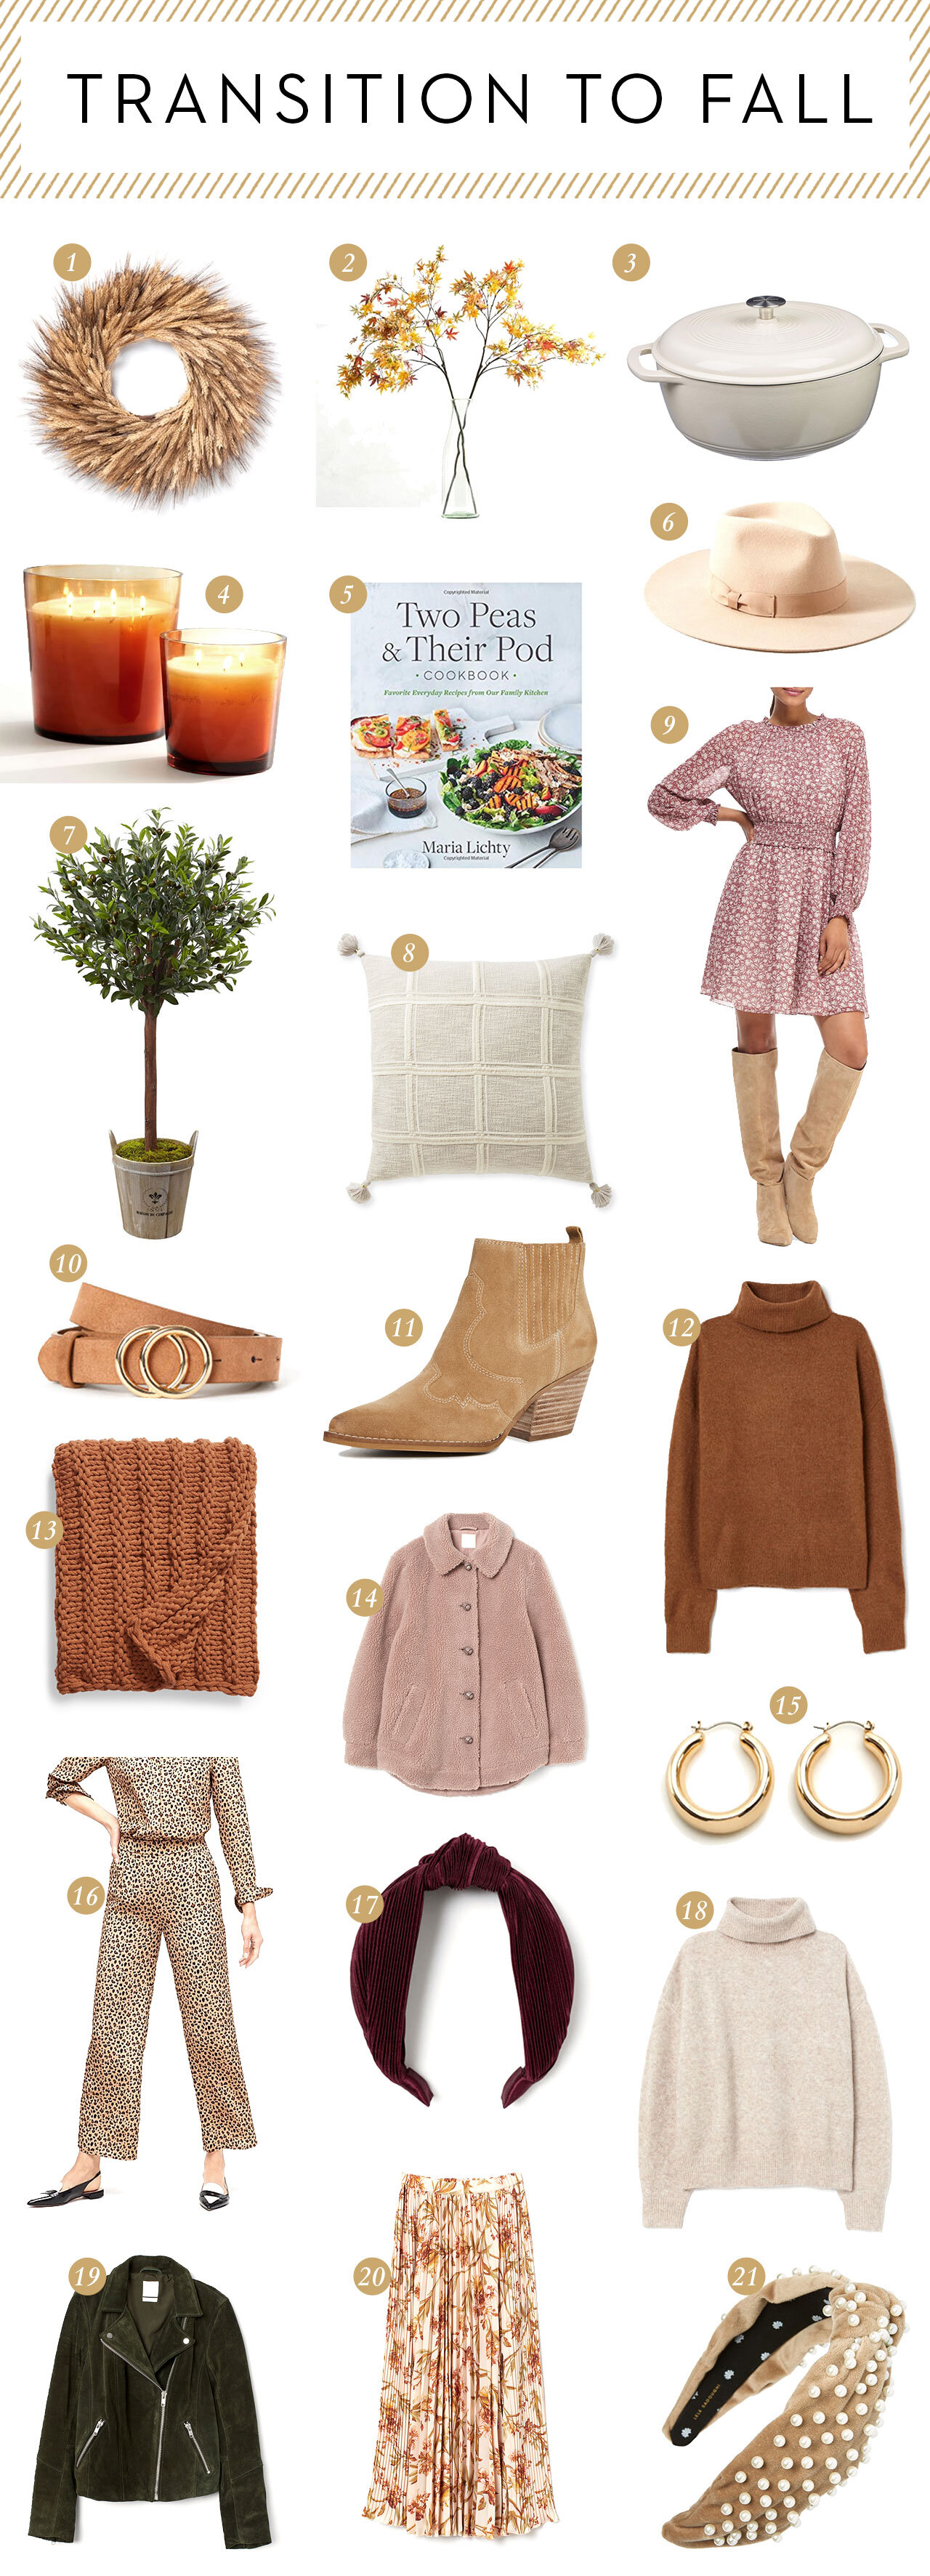 Favorite Items for your Home this Fall